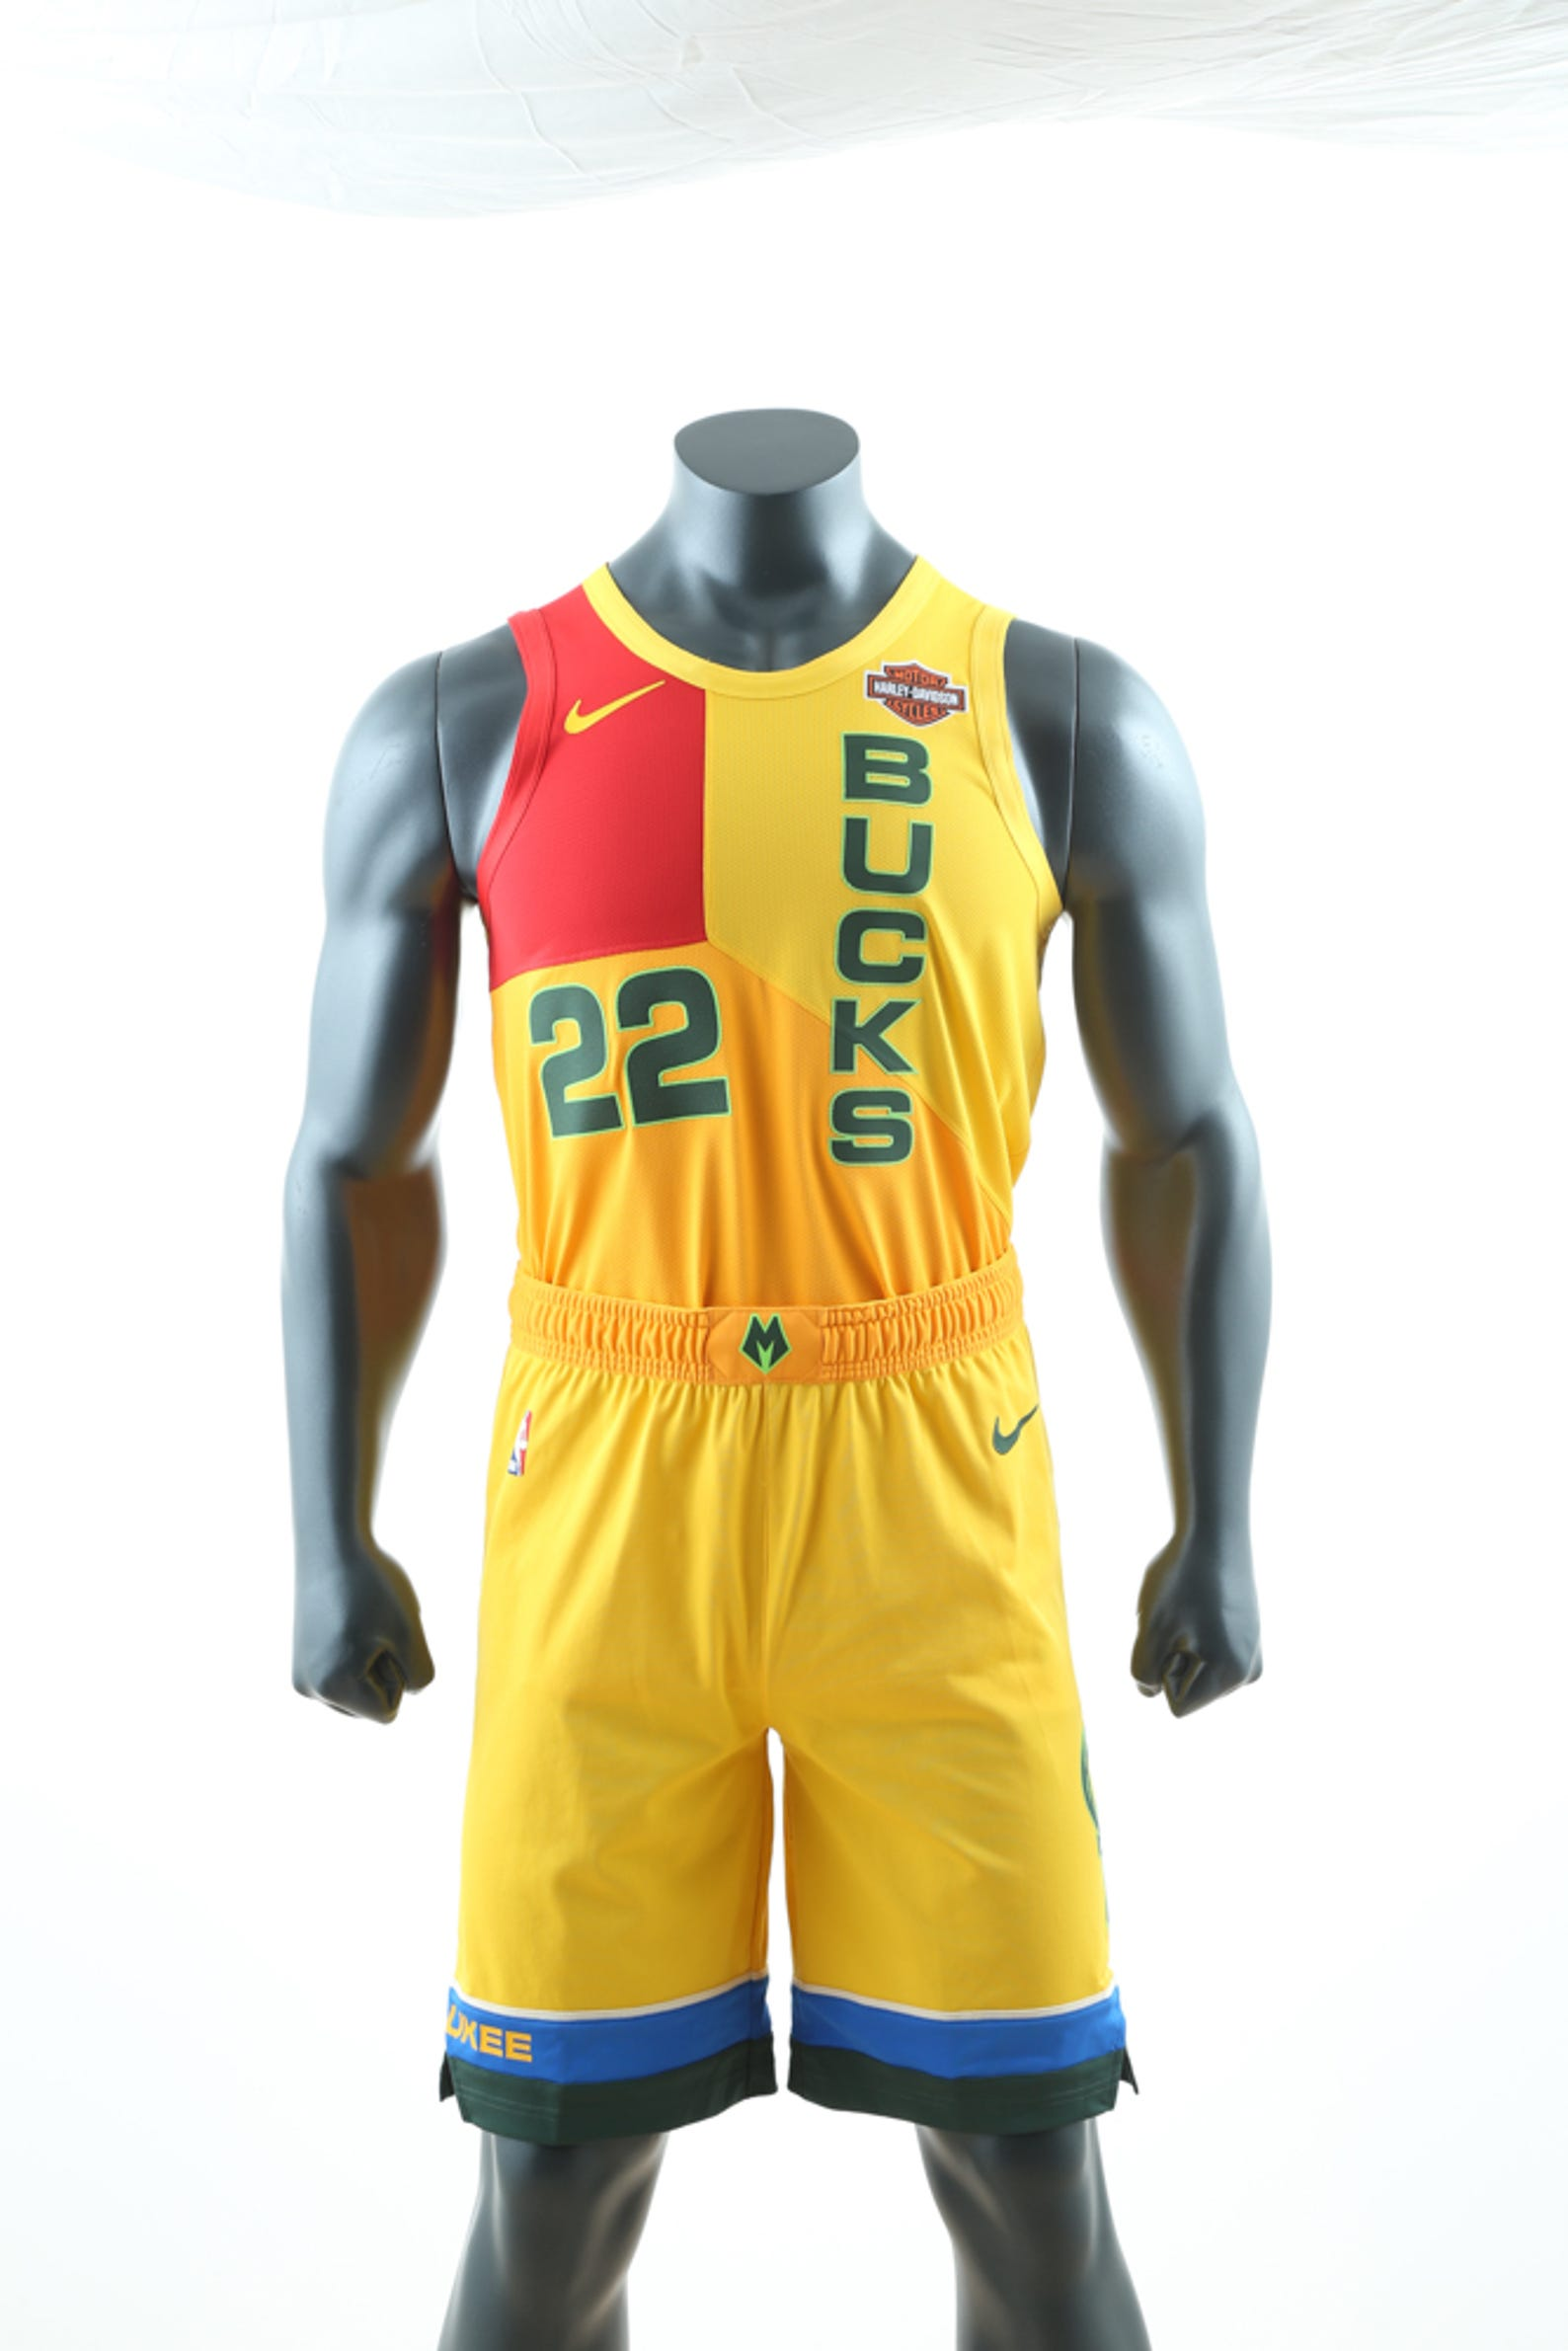 competitive price d398d b2f26 PHOTOS: The roster of Bucks jerseys